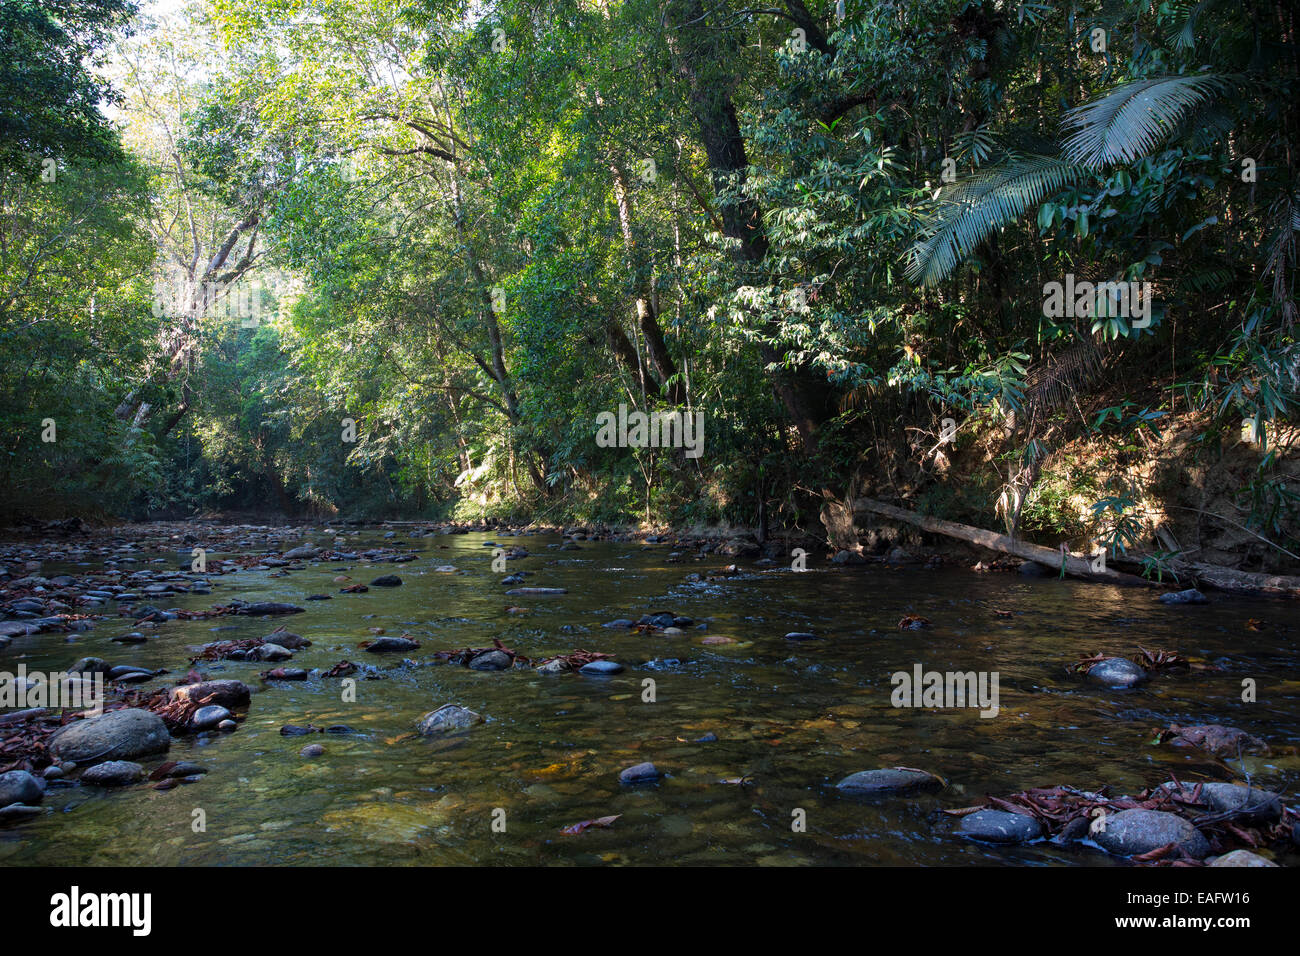 Freshwater stream and tropical rainforest in Taman Negara National Park, Malaysia Stock Photo